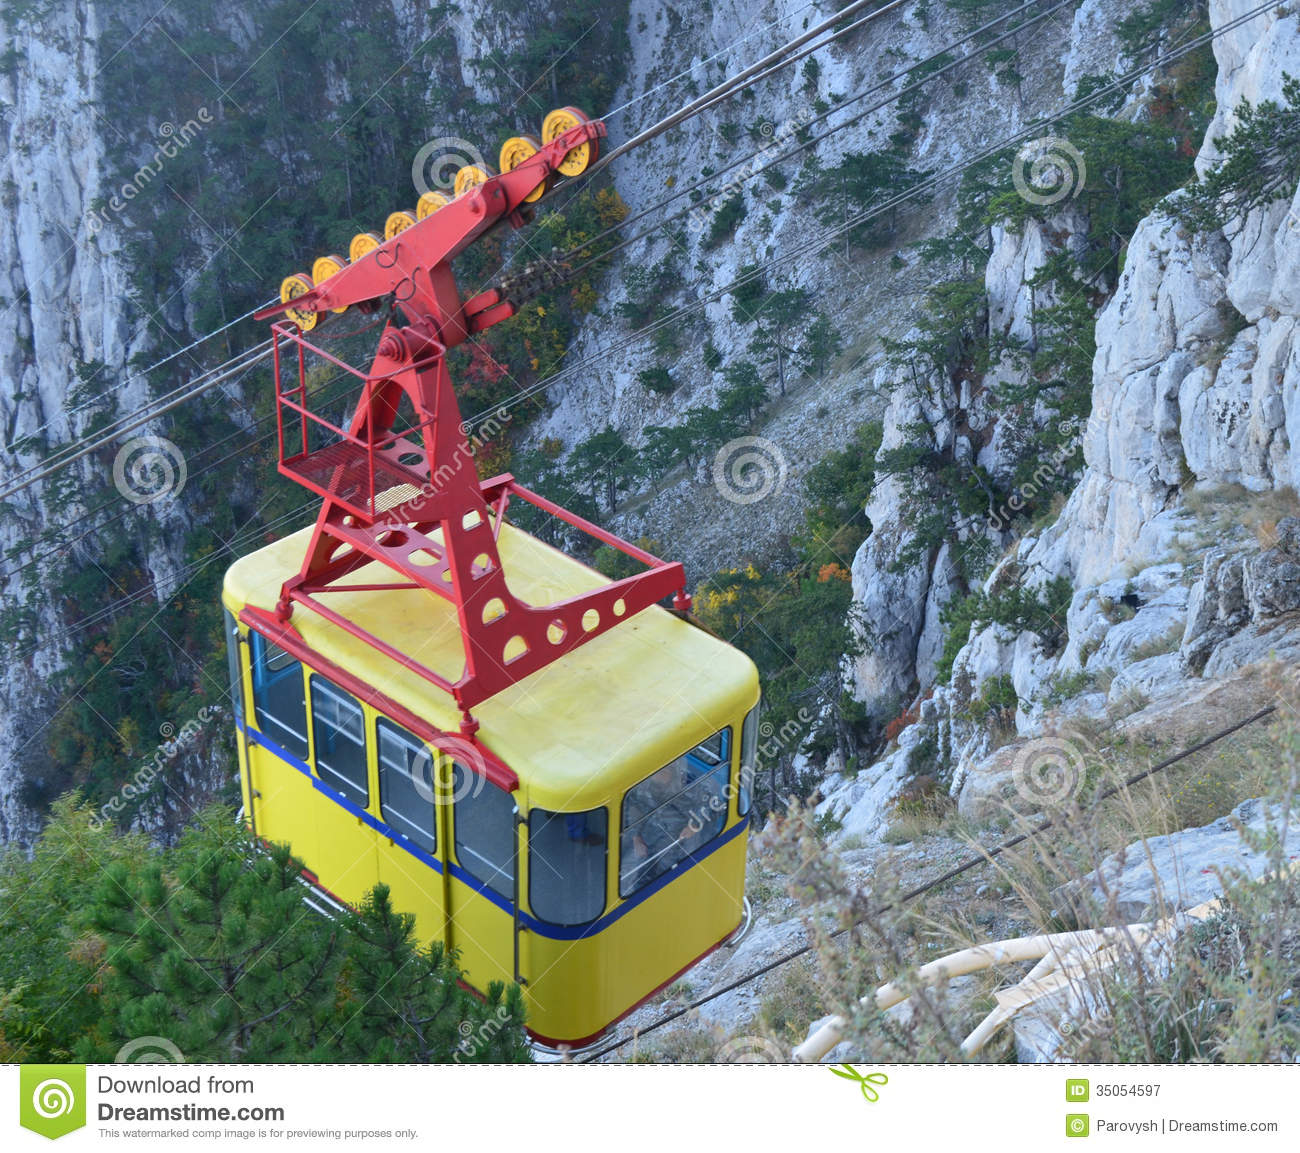 Ropeway Backgrounds, Compatible - PC, Mobile, Gadgets| 1300x1153 px